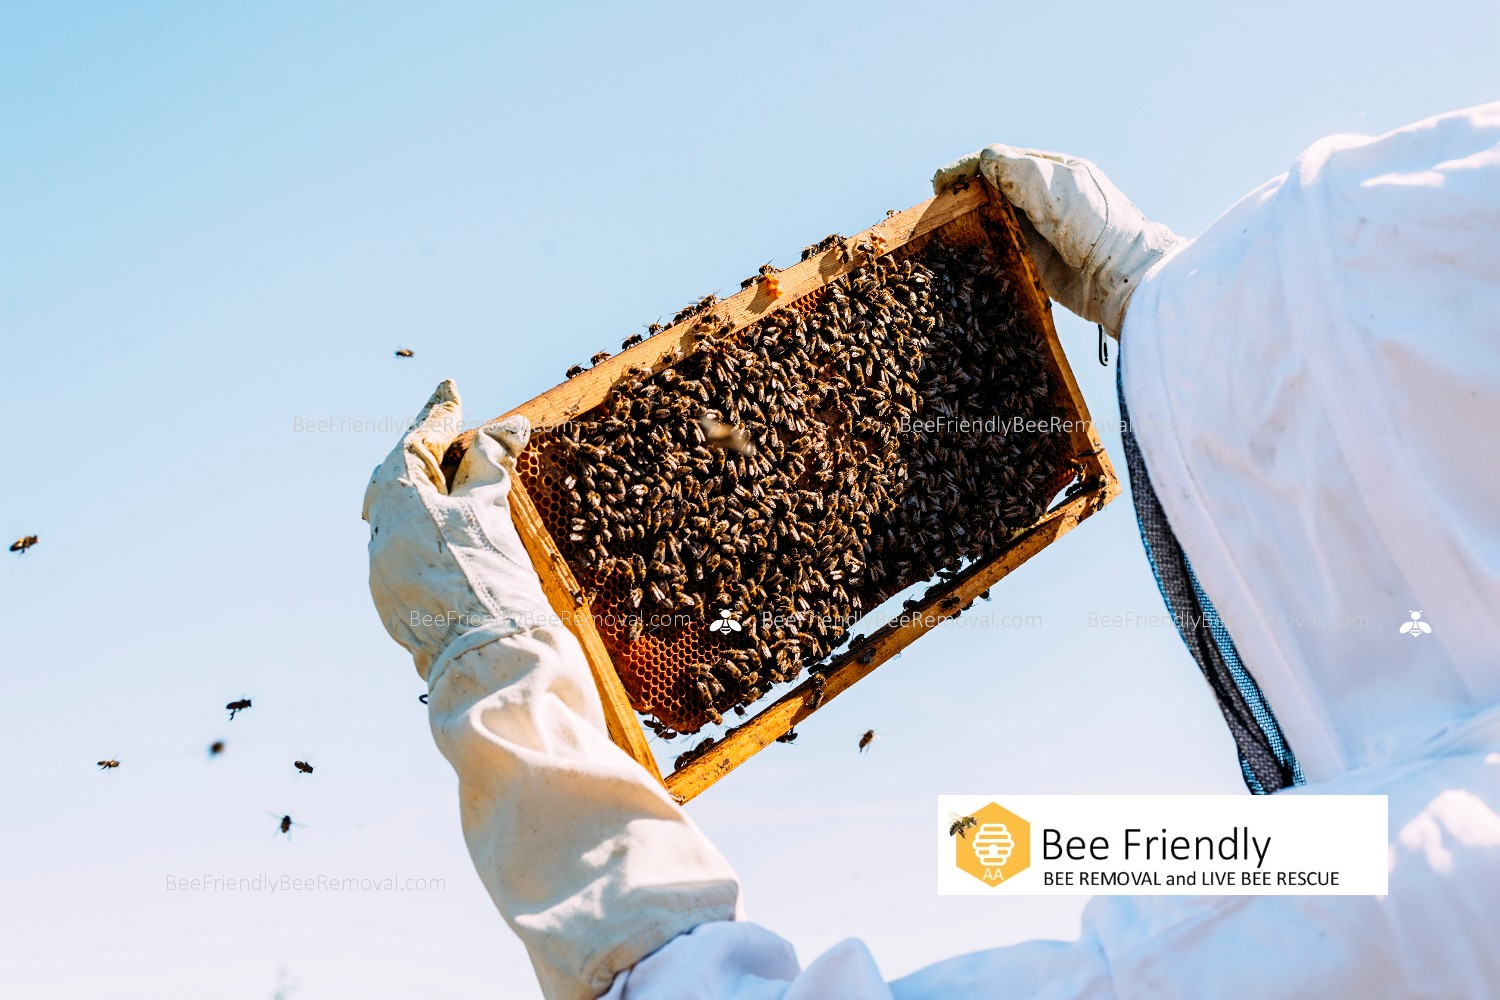 Bee Friendly Bee Removal